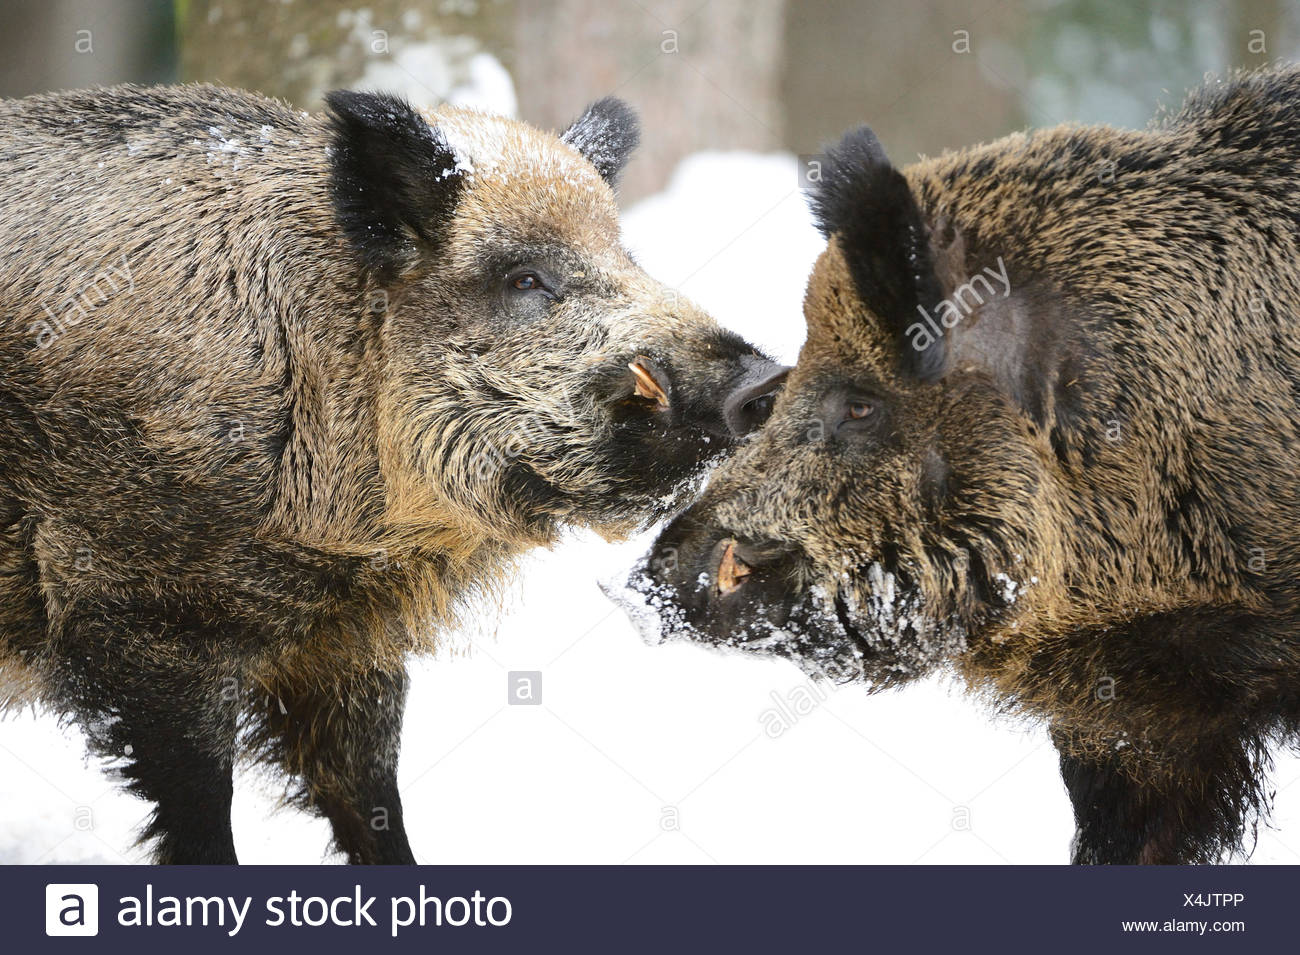 Wild boar, animal, Sus scrofa scrofa, sow, wild boars, black game, pigs, pig, vertebrates, mammals, real pigs, pigs, winter, Germ - Stock Image